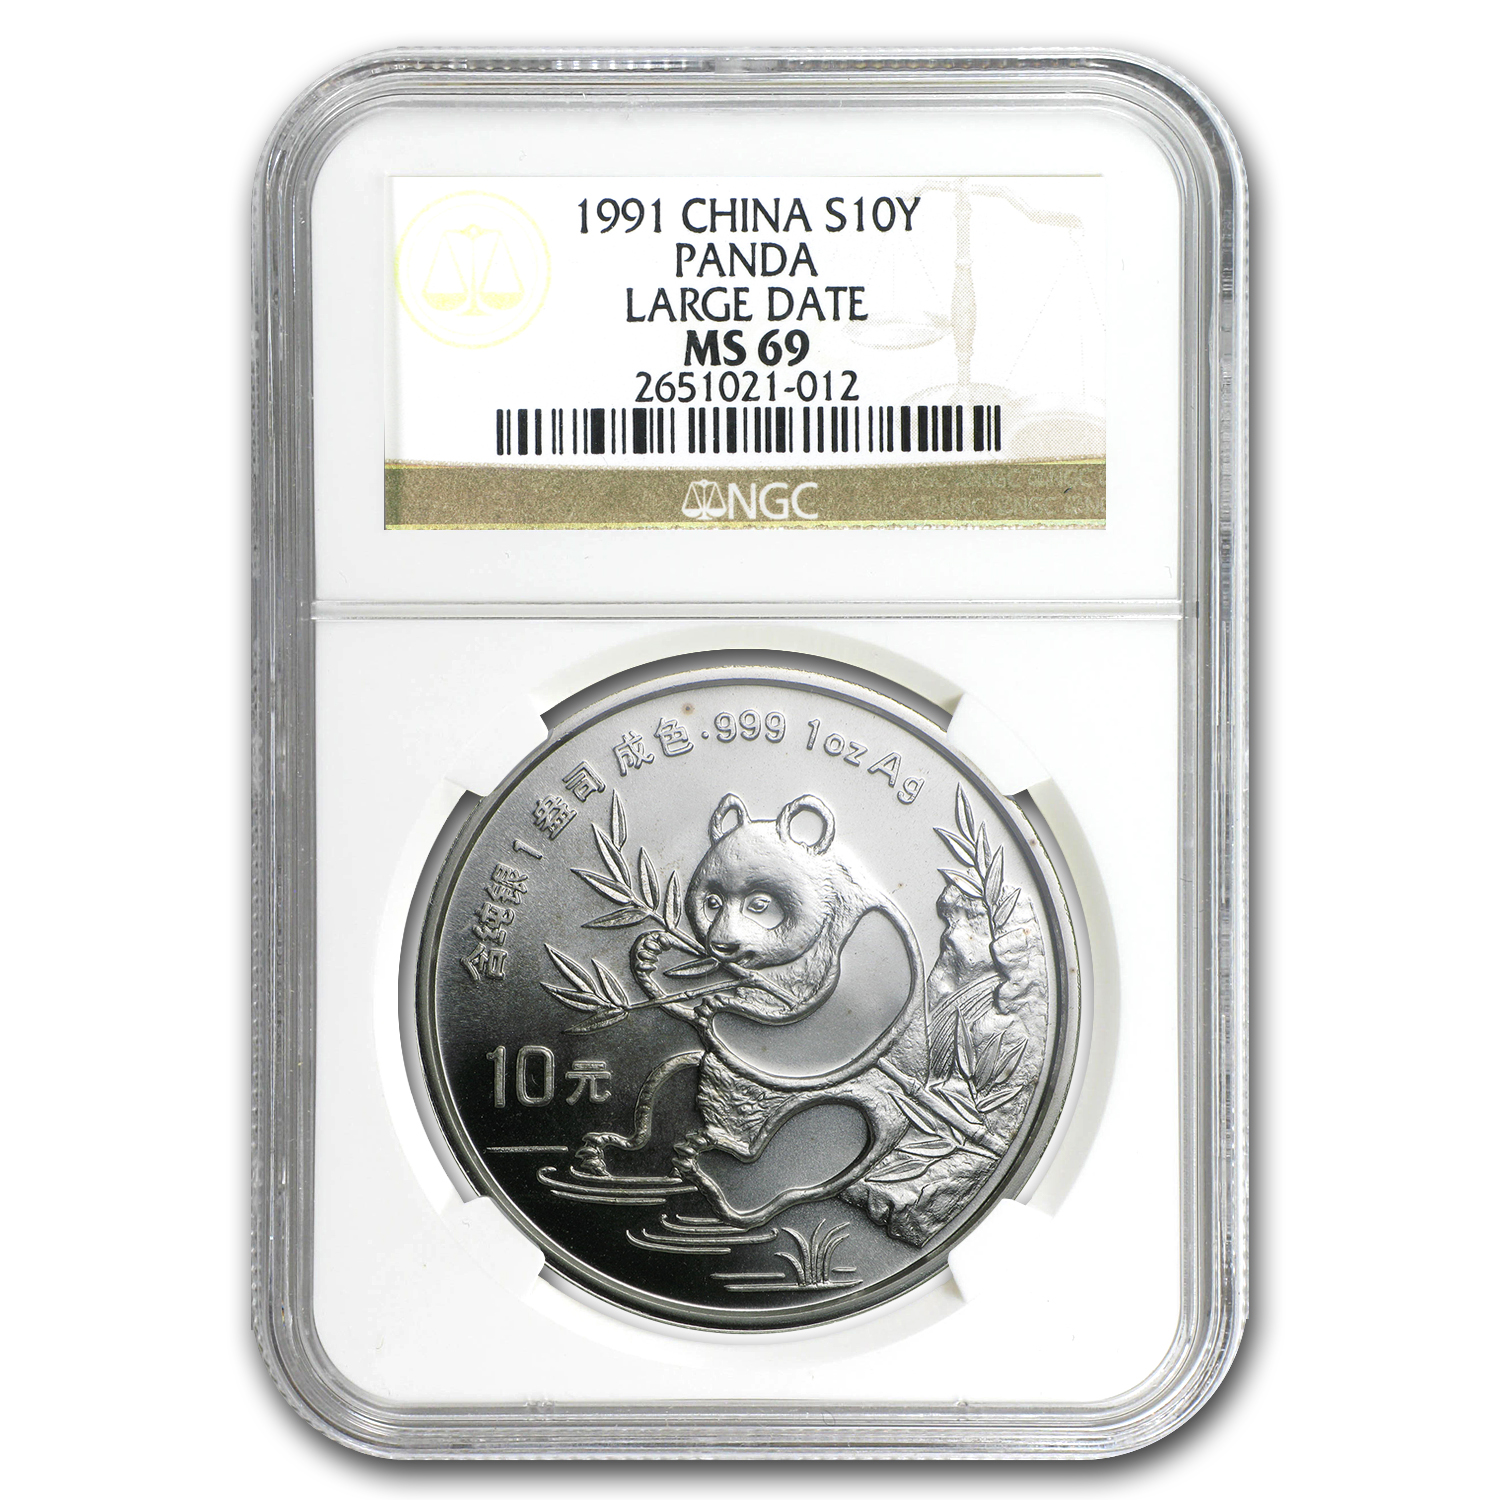 1991 1 oz Silver Chinese Panda - MS-69 NGC - Large Date